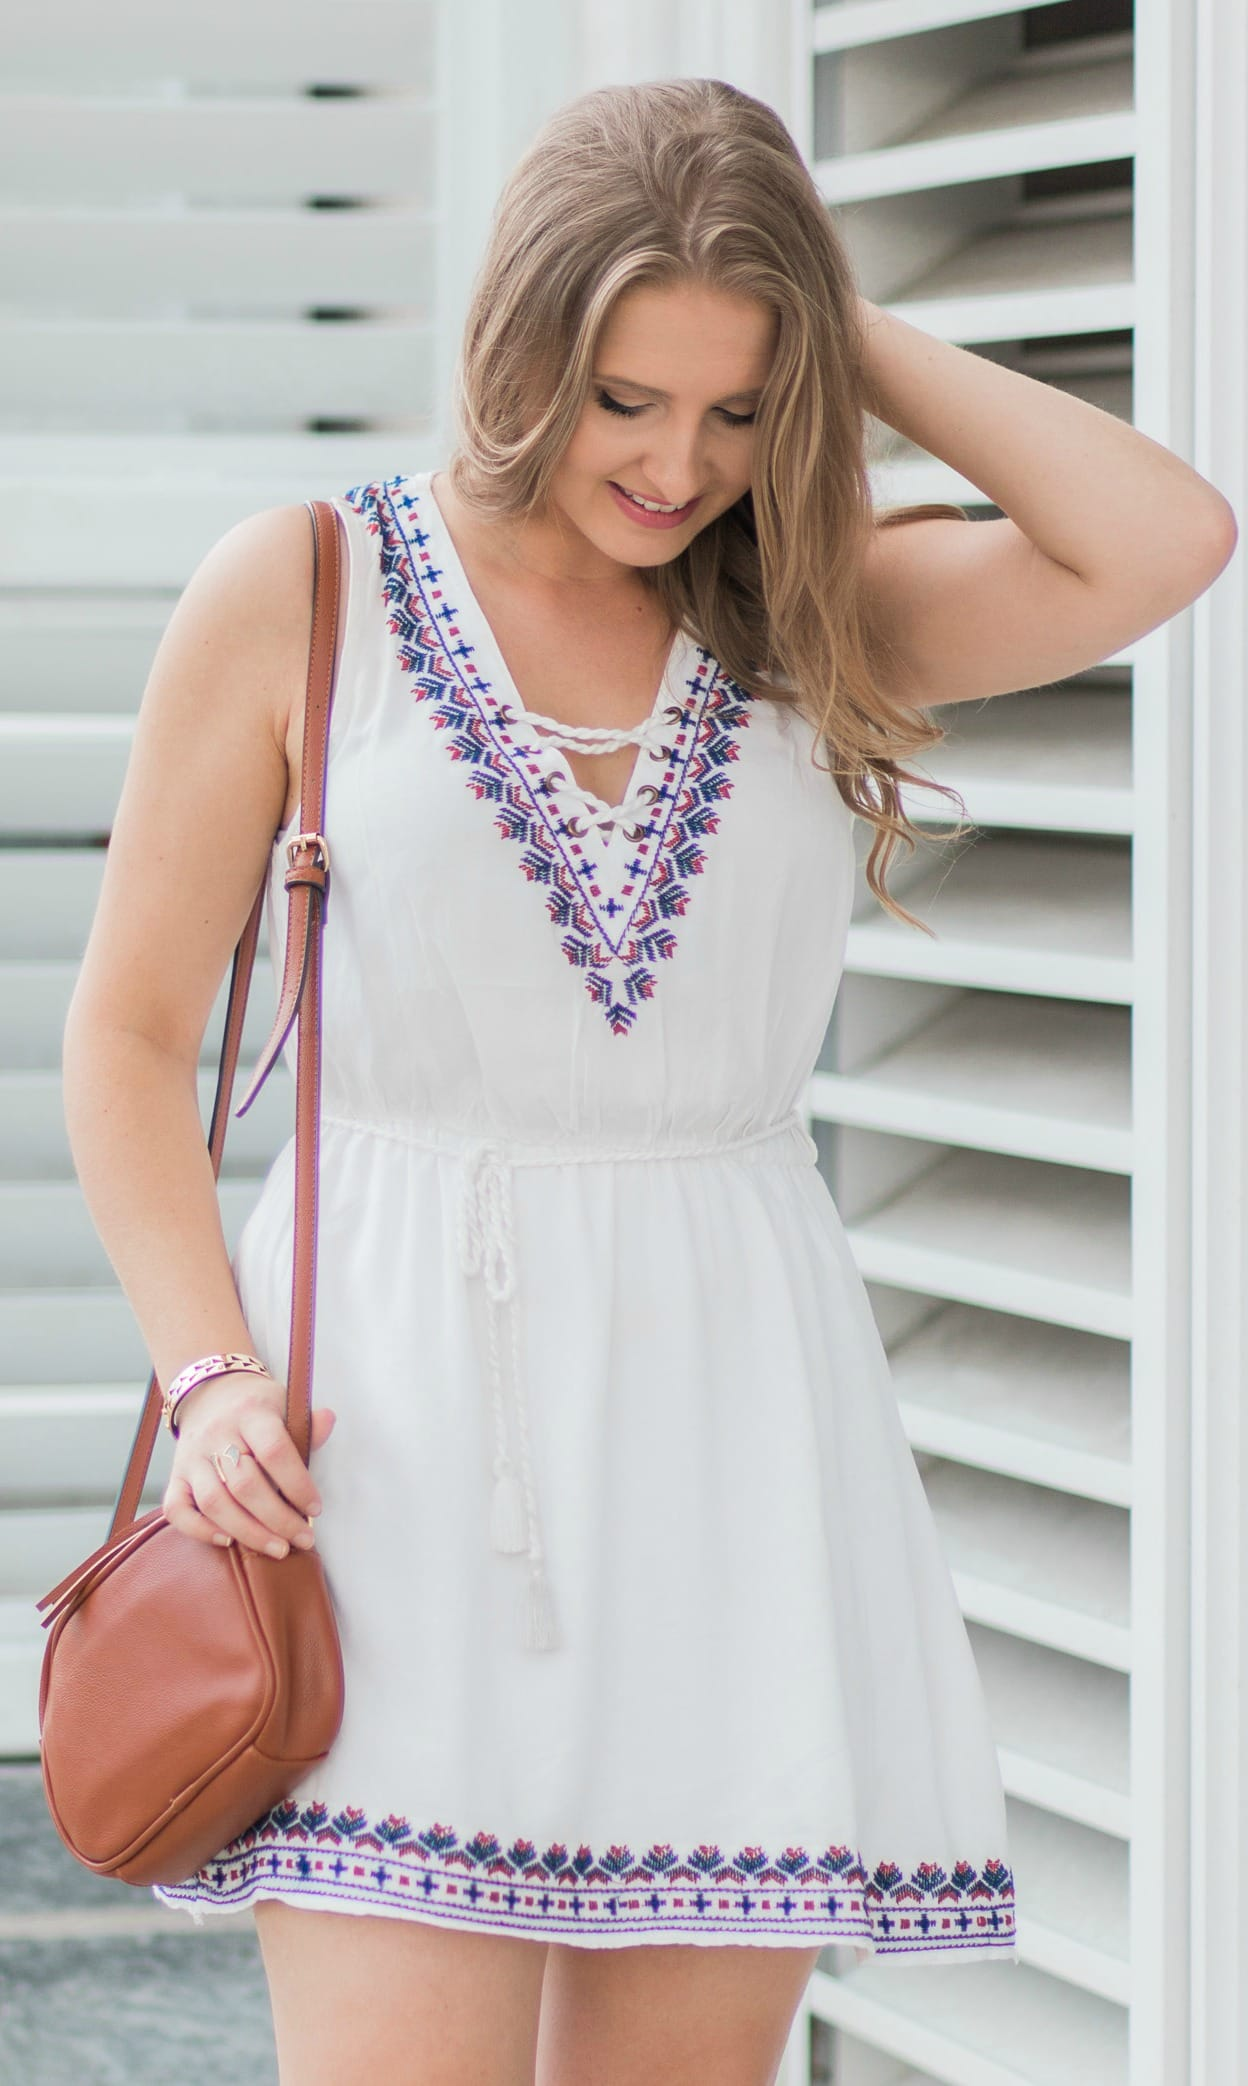 Forever 21 embroidered lace-up dress, Old Navy cognac tassel crossbody bag, Lulu's cognac lace-up heels, and Stella & Dot Addison cuff | Ashley Brooke Nicholas